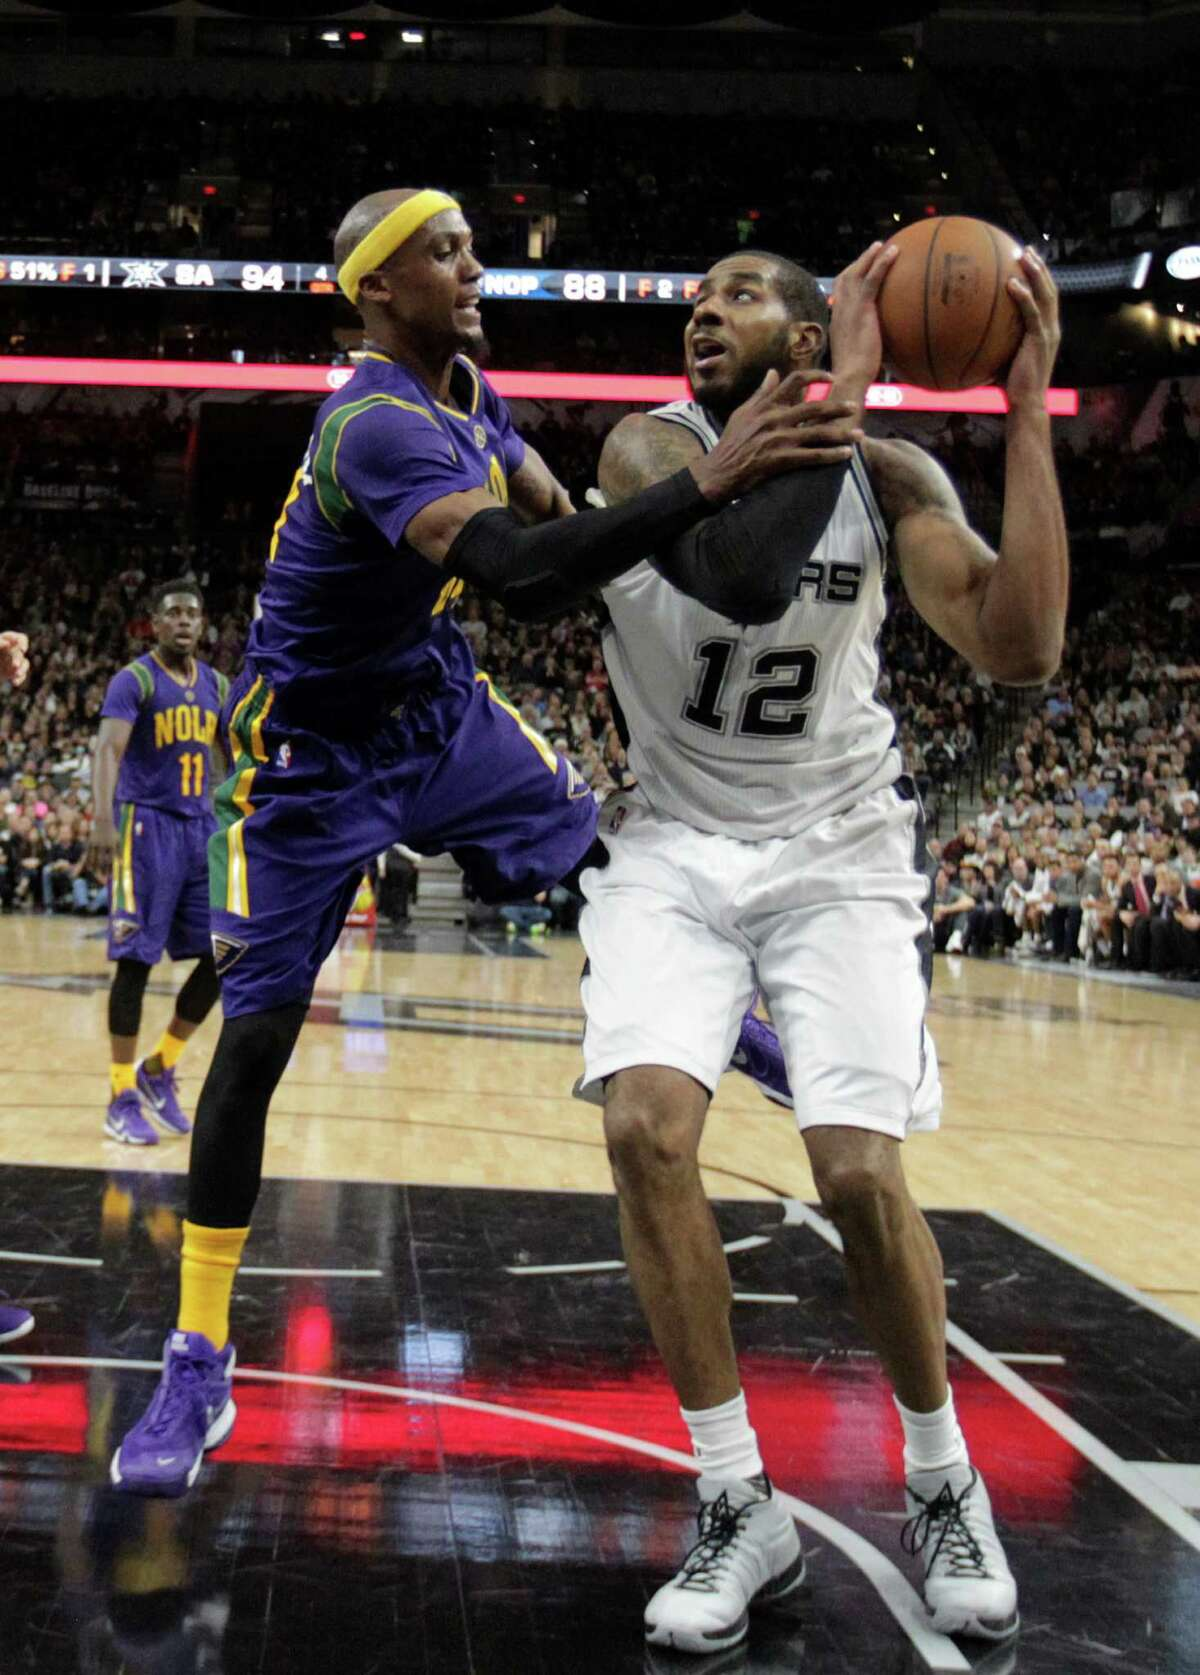 San Antonio Spurs' LaMarcus Aldridge is fouled by New Orleans Pelicans' Dante Cunningham during the second half at the AT&T Center, Wednesday, Feb. 3, 2016.